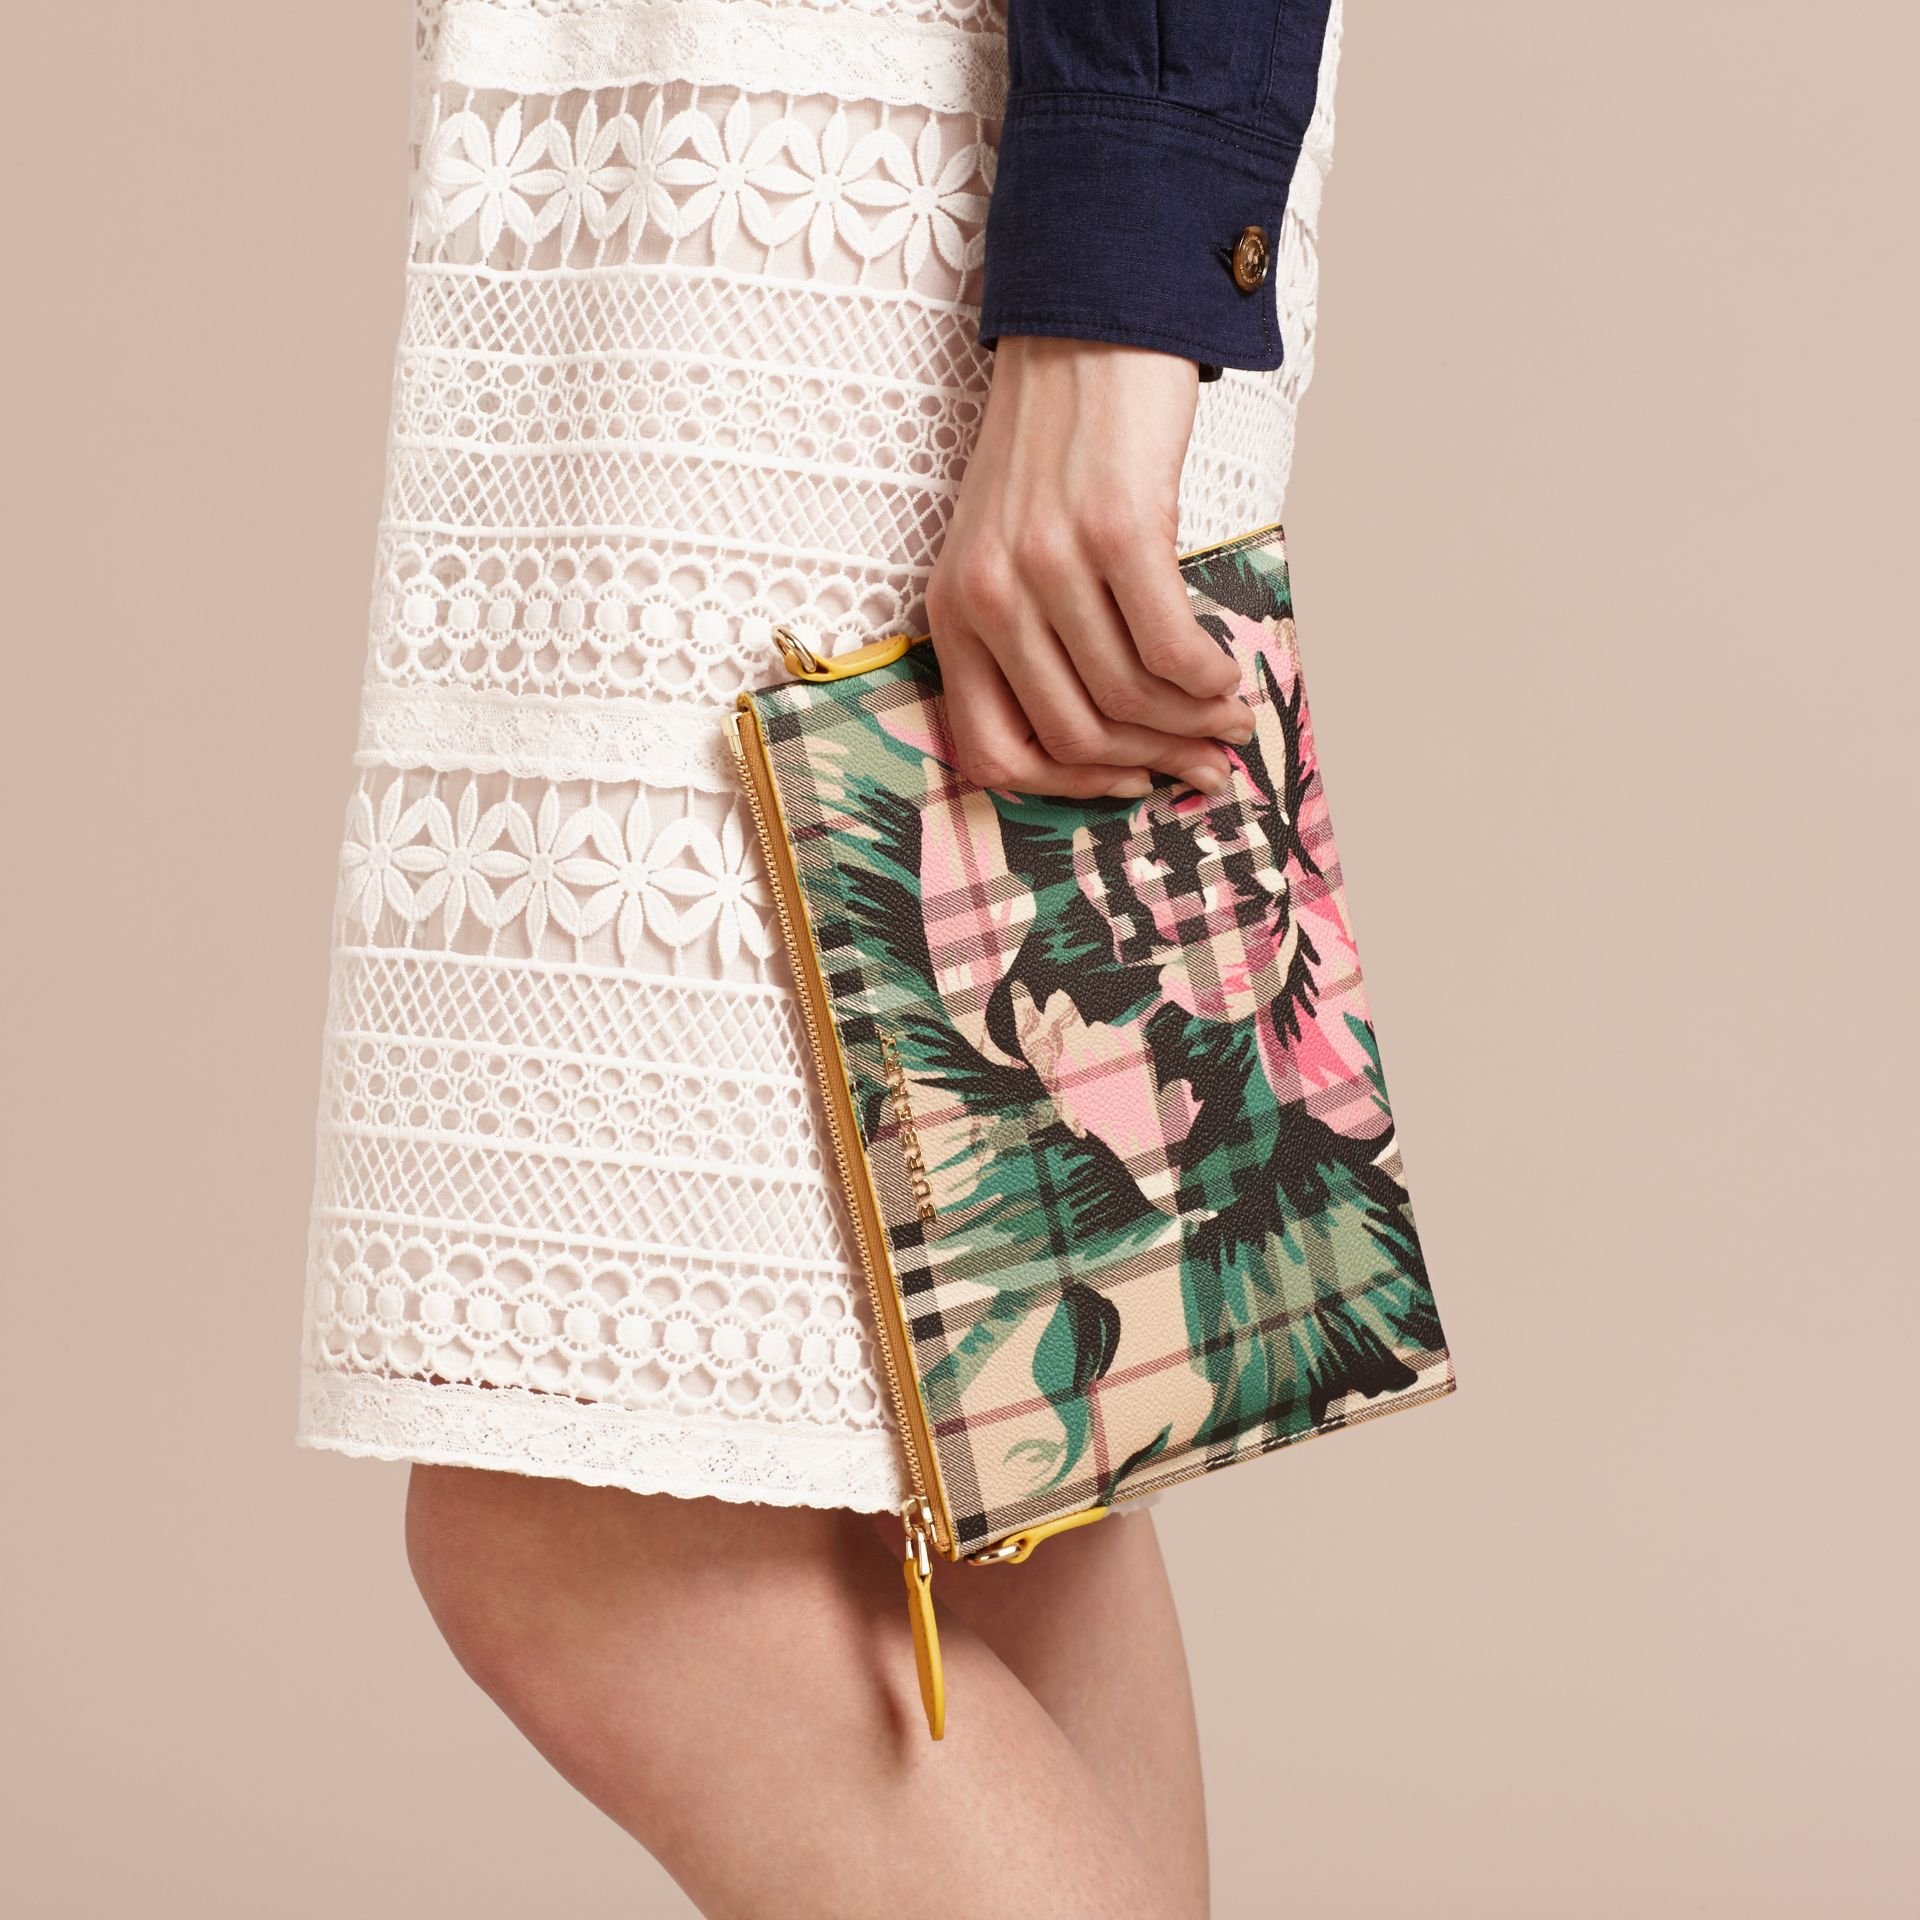 Peony Rose Print Haymarket Check and Leather Clutch Bag in Larch Yellow/emerald Green - gallery image 4